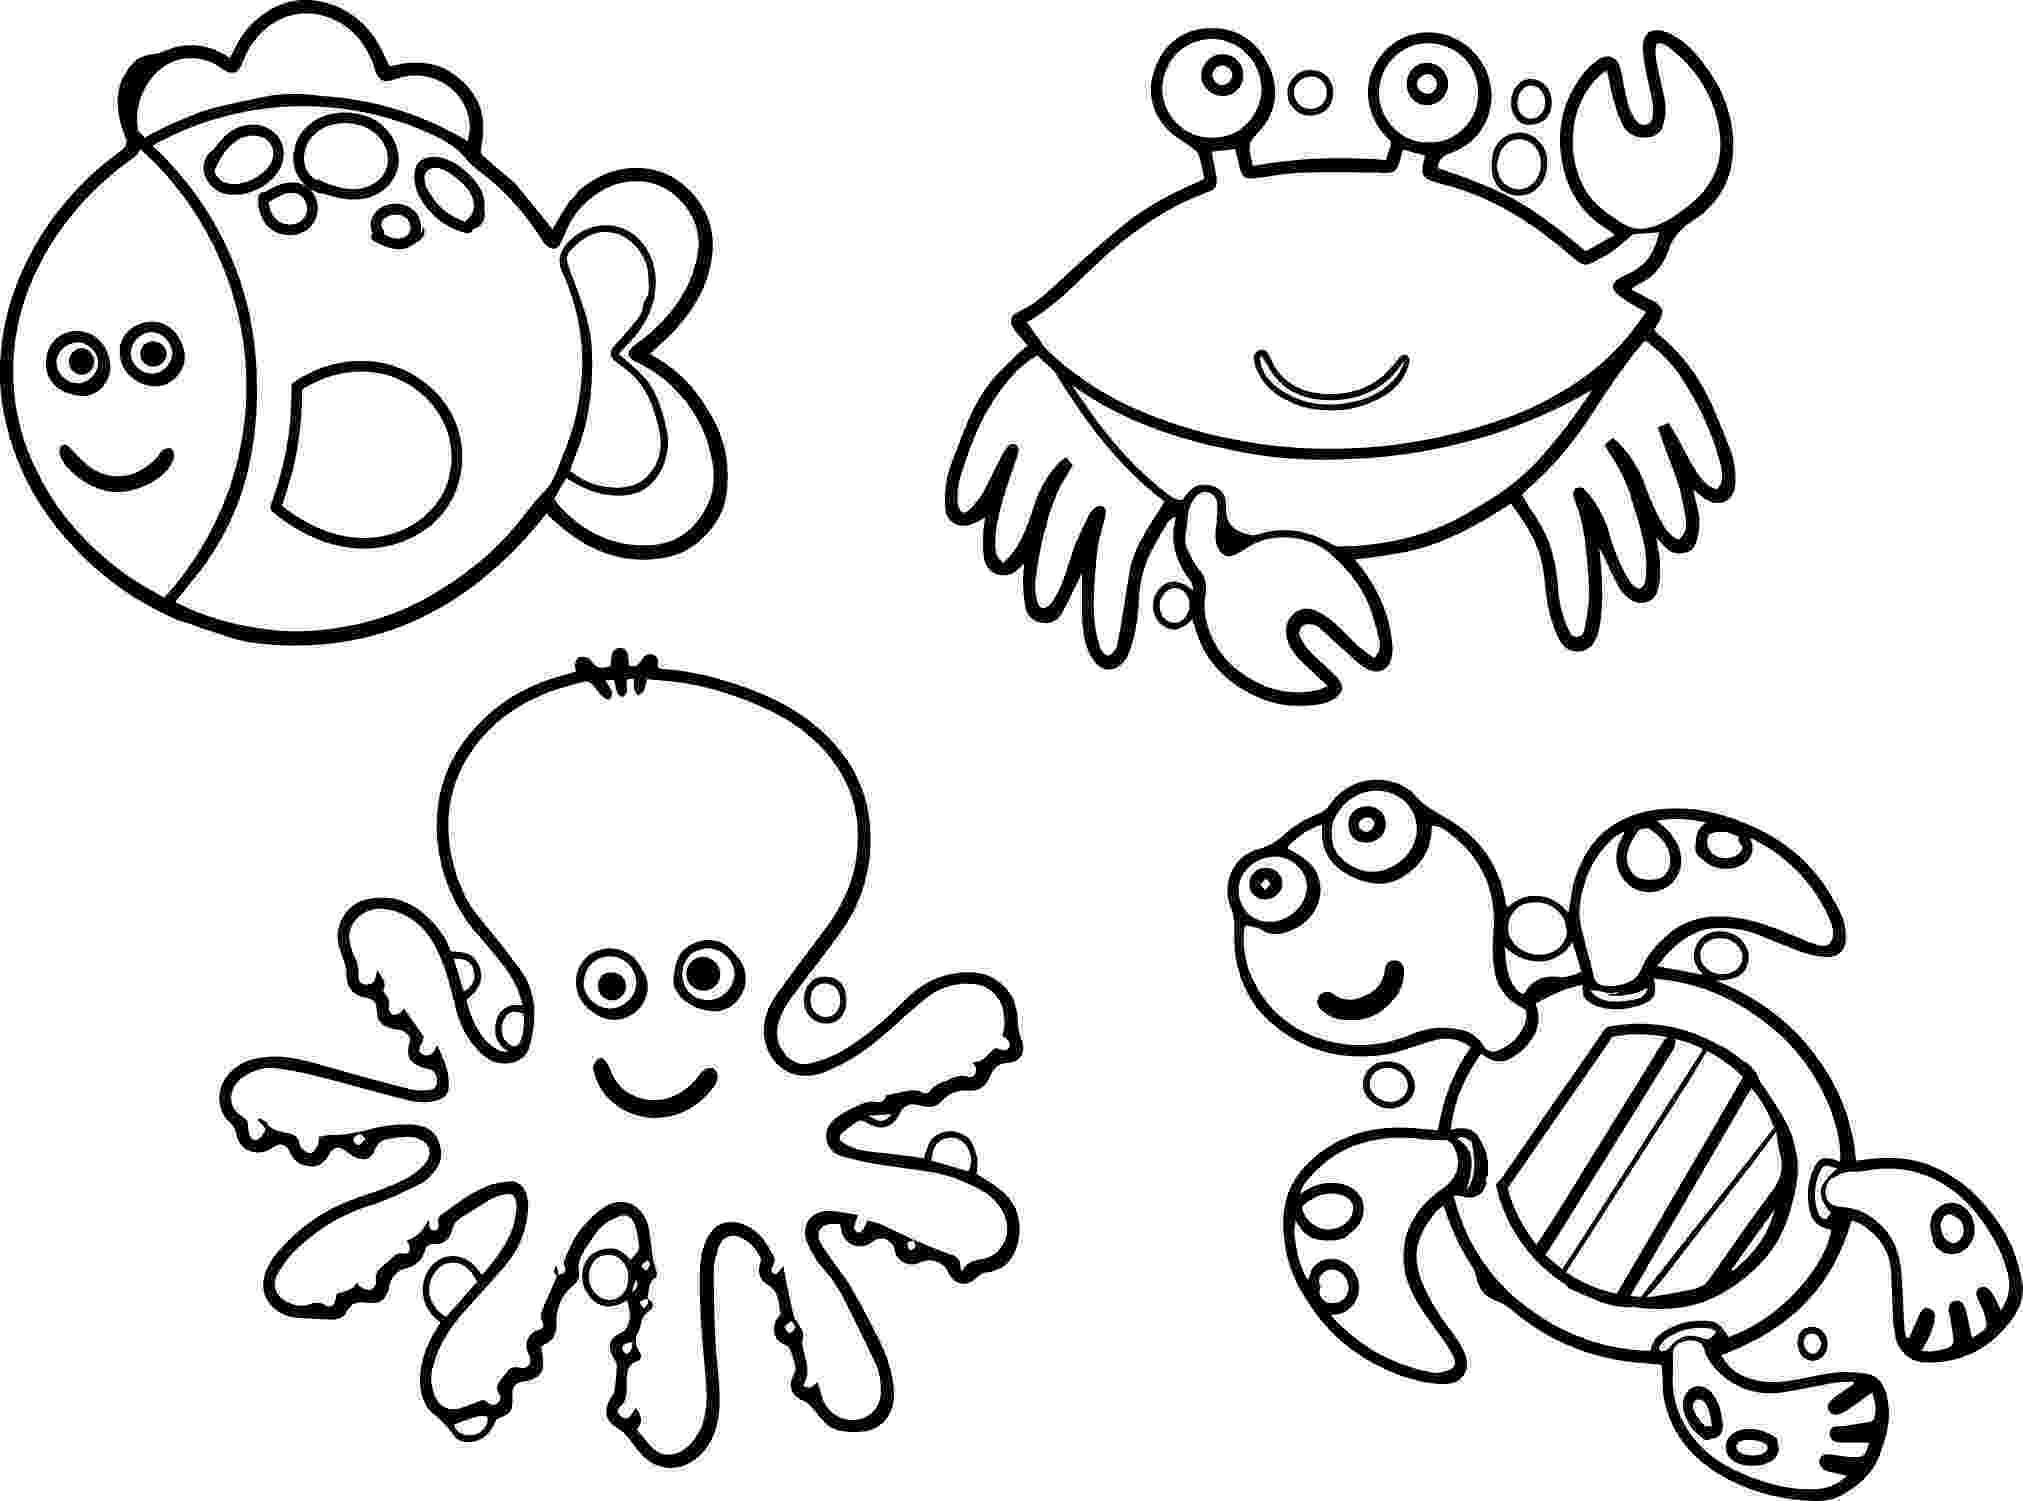 real animal coloring pages farm animal printables that actually look like the real animal coloring pages real